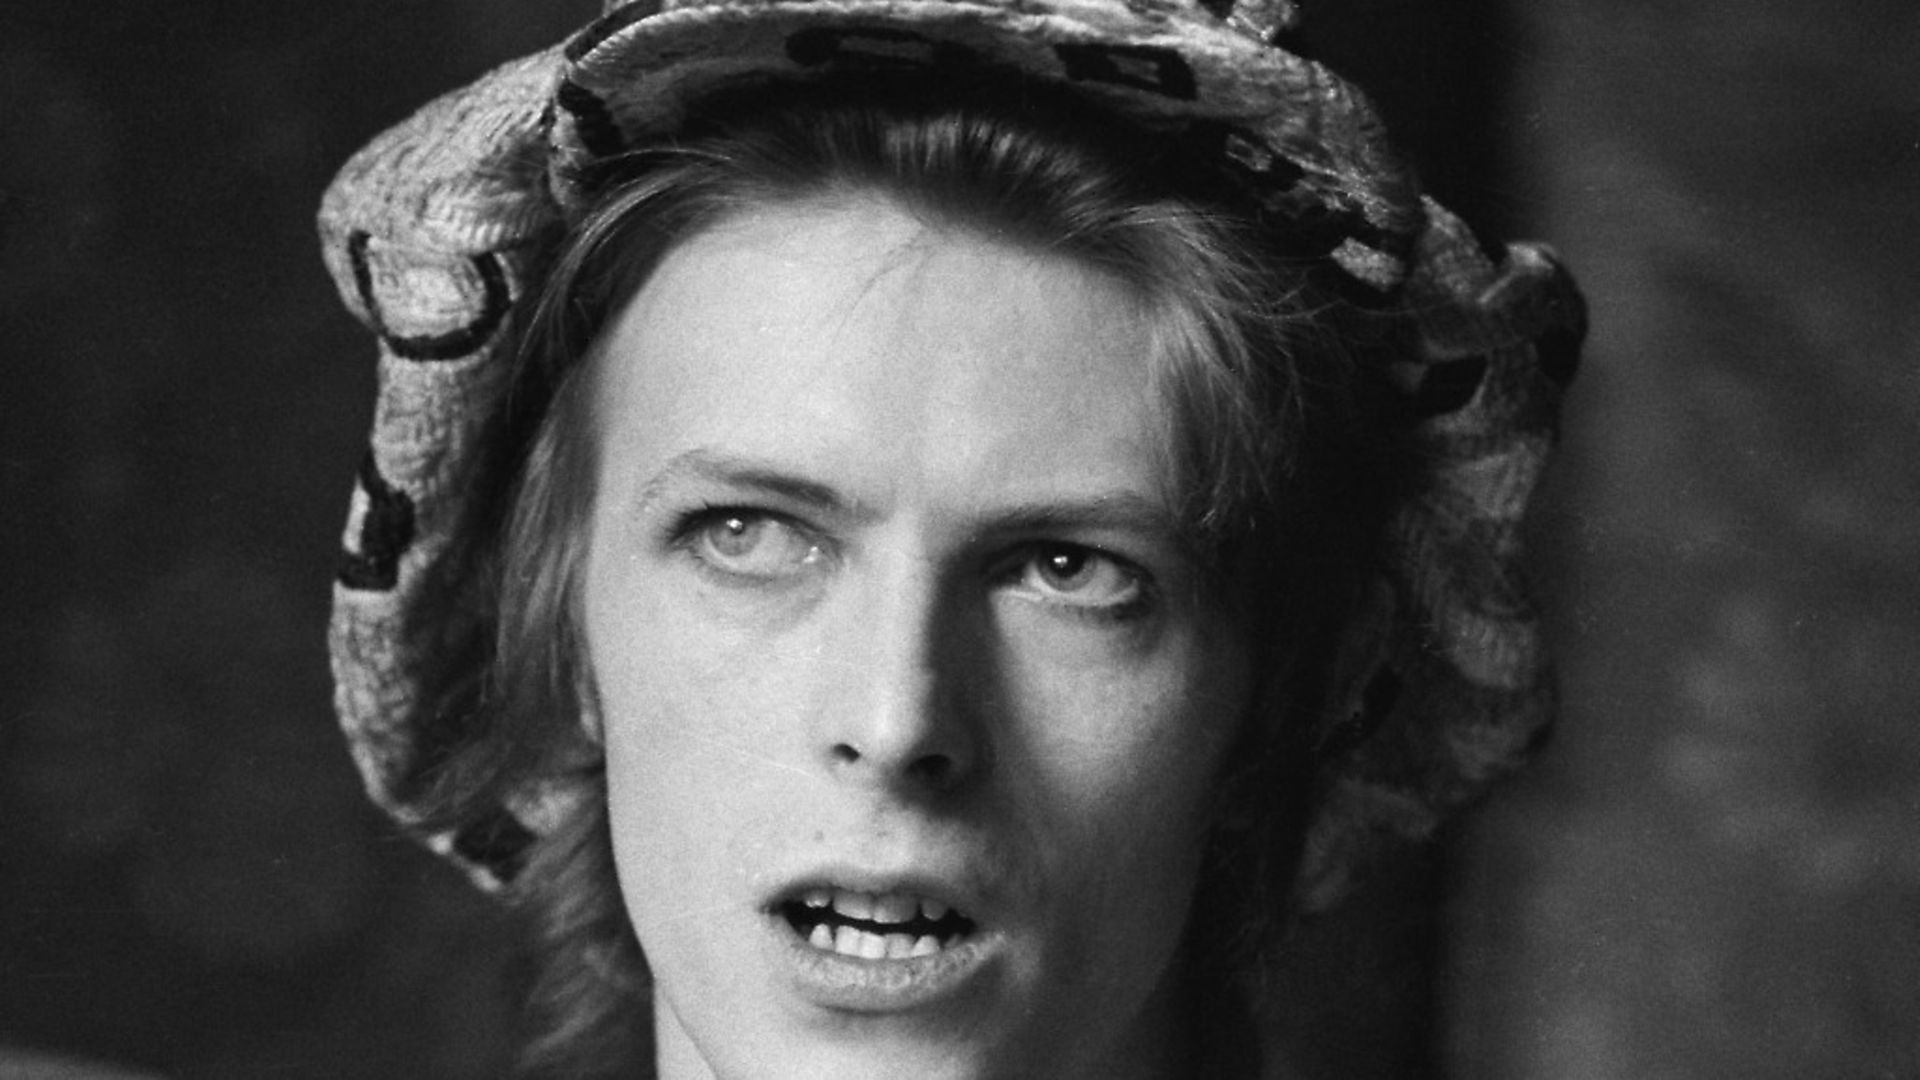 Singer David Bowie (1947 - 2016) being interviewed at his ground floor flat at Haddon Hall, where he has been redecorating the ceiling in silver paint, Beckenham, London, 24th April 1972. (Photo by Michael Putland/Getty Images) - Credit: Getty Images